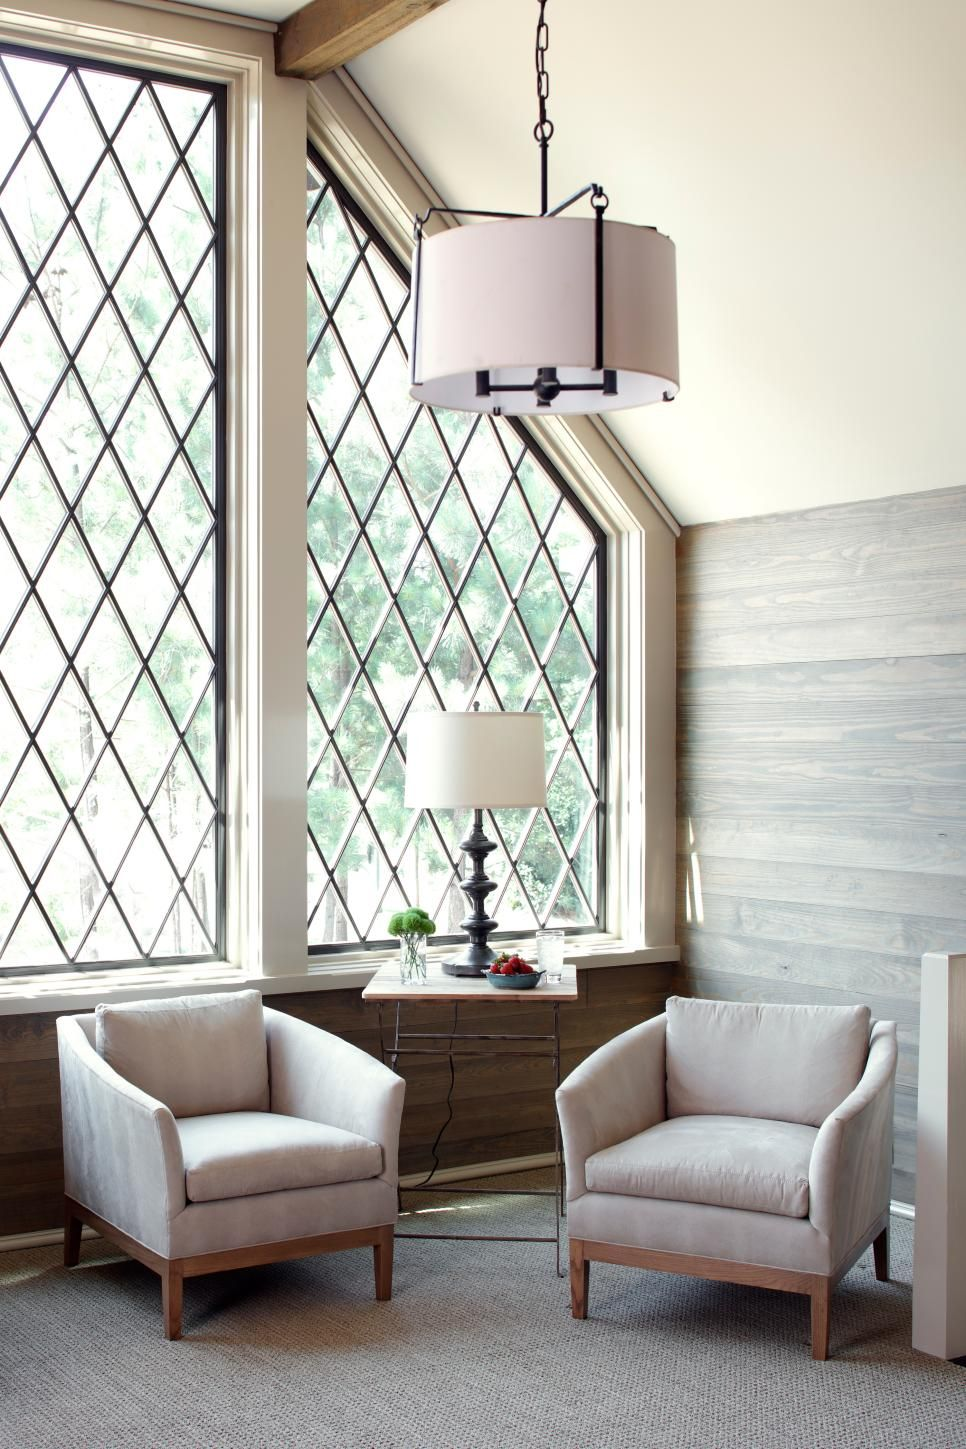 Large Criss Cross Paned Windows Fill This Sitting Area With Ample Natural Light Making It A Prime Spot For Enjoying Conversation And